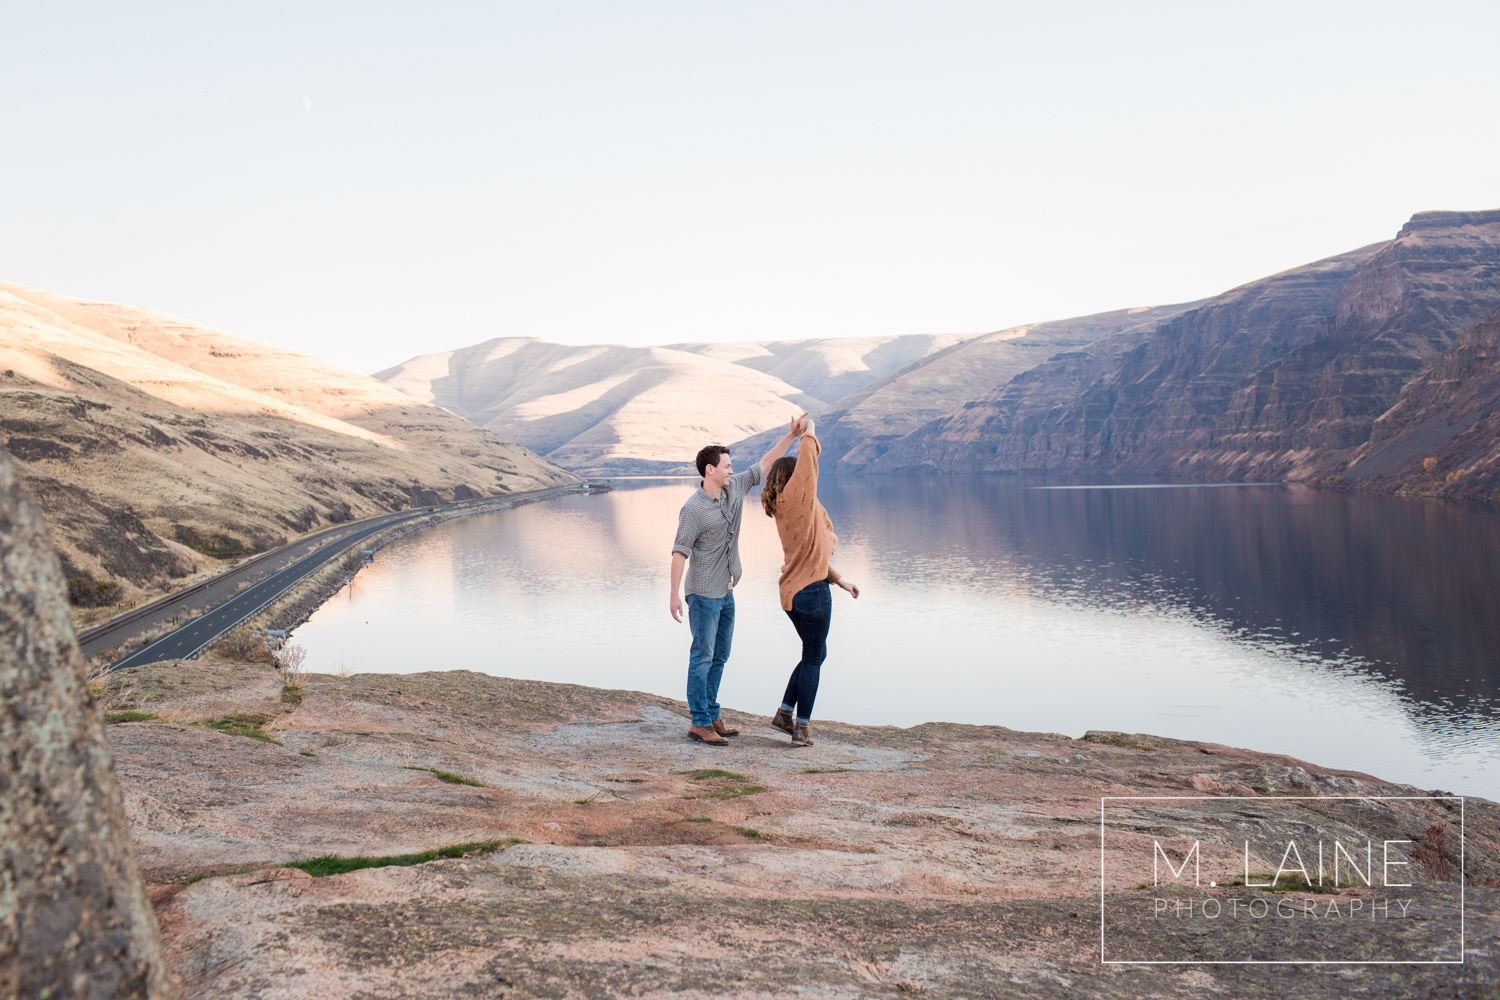 Palouse-Tacoma-Engagement-Photographer-5161.jpg